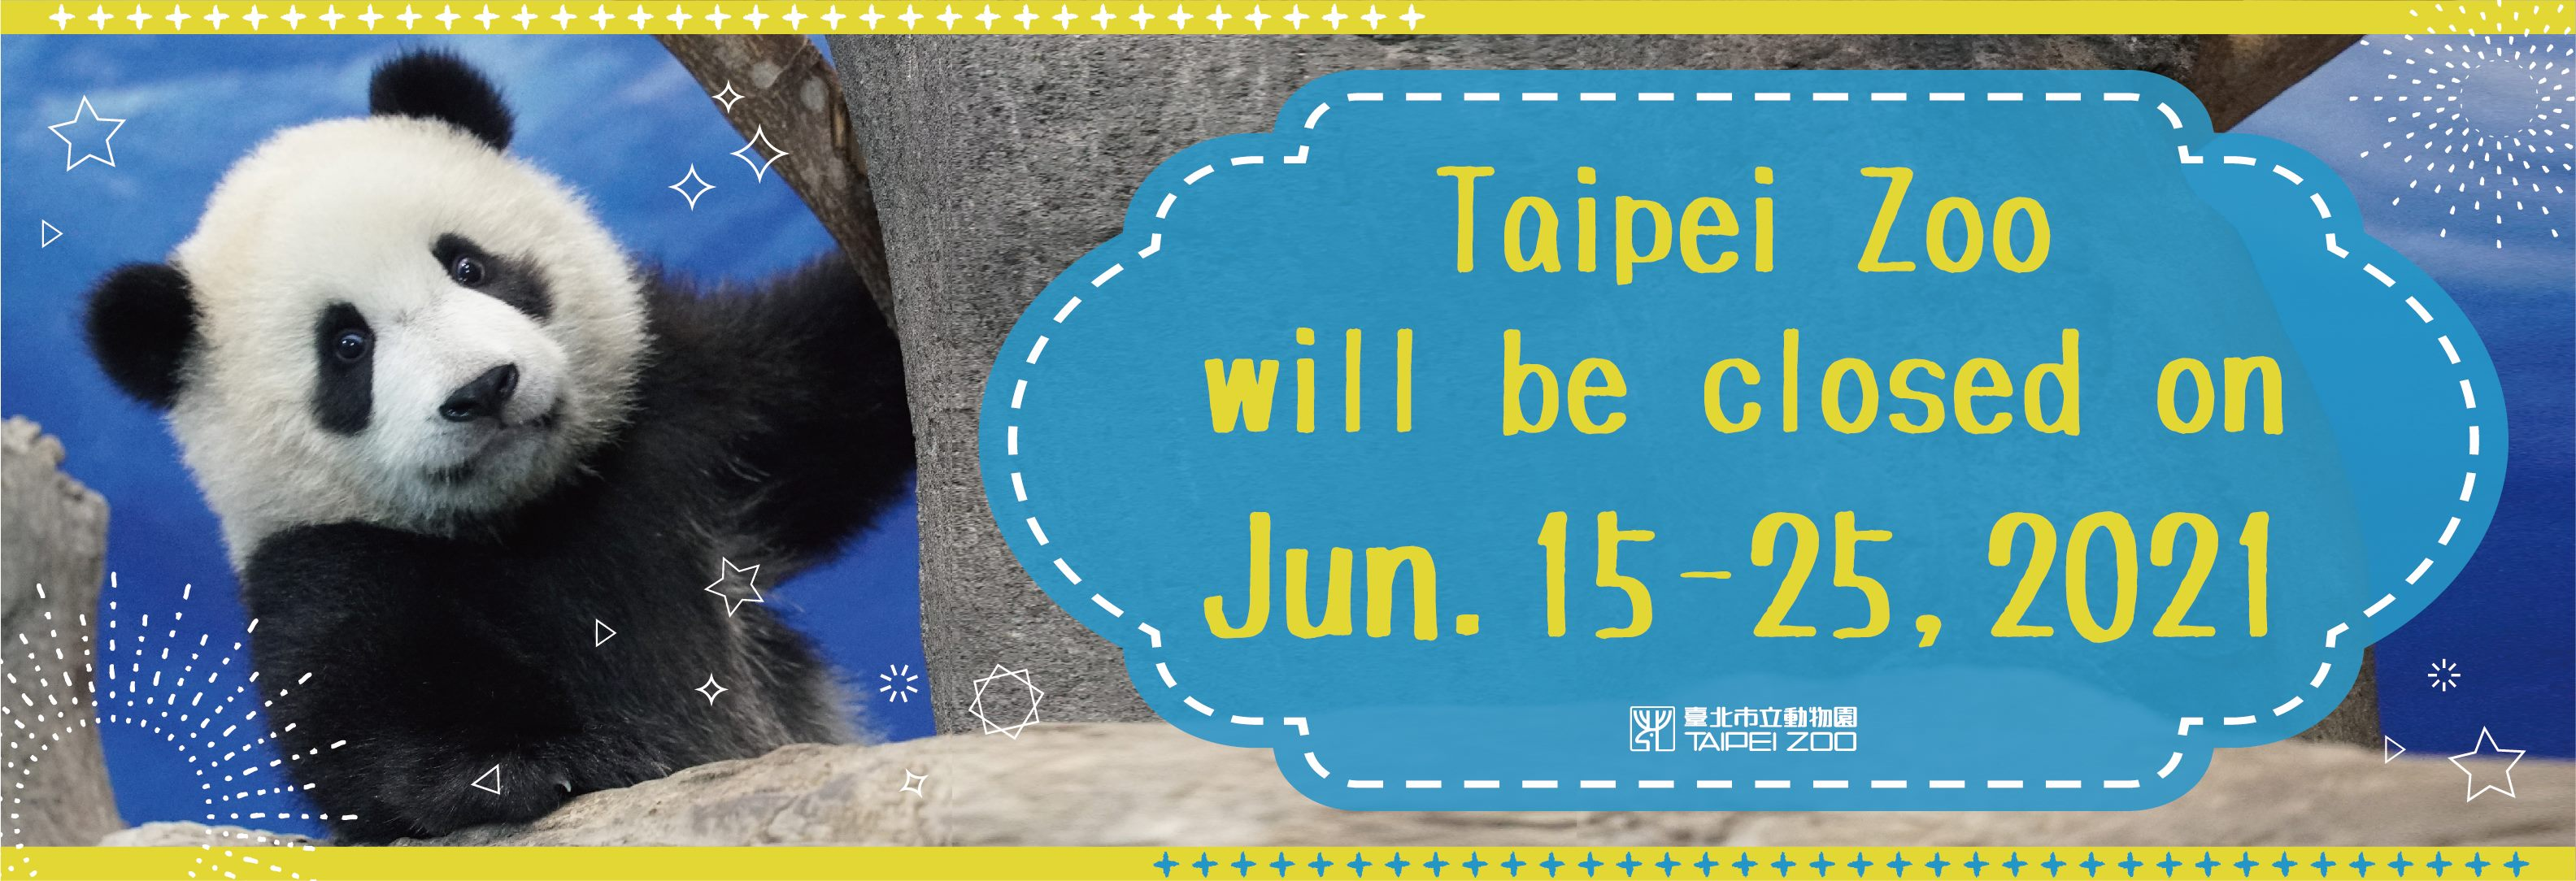 Taipei Zoo will be Closed from 15th to 25th June 2021